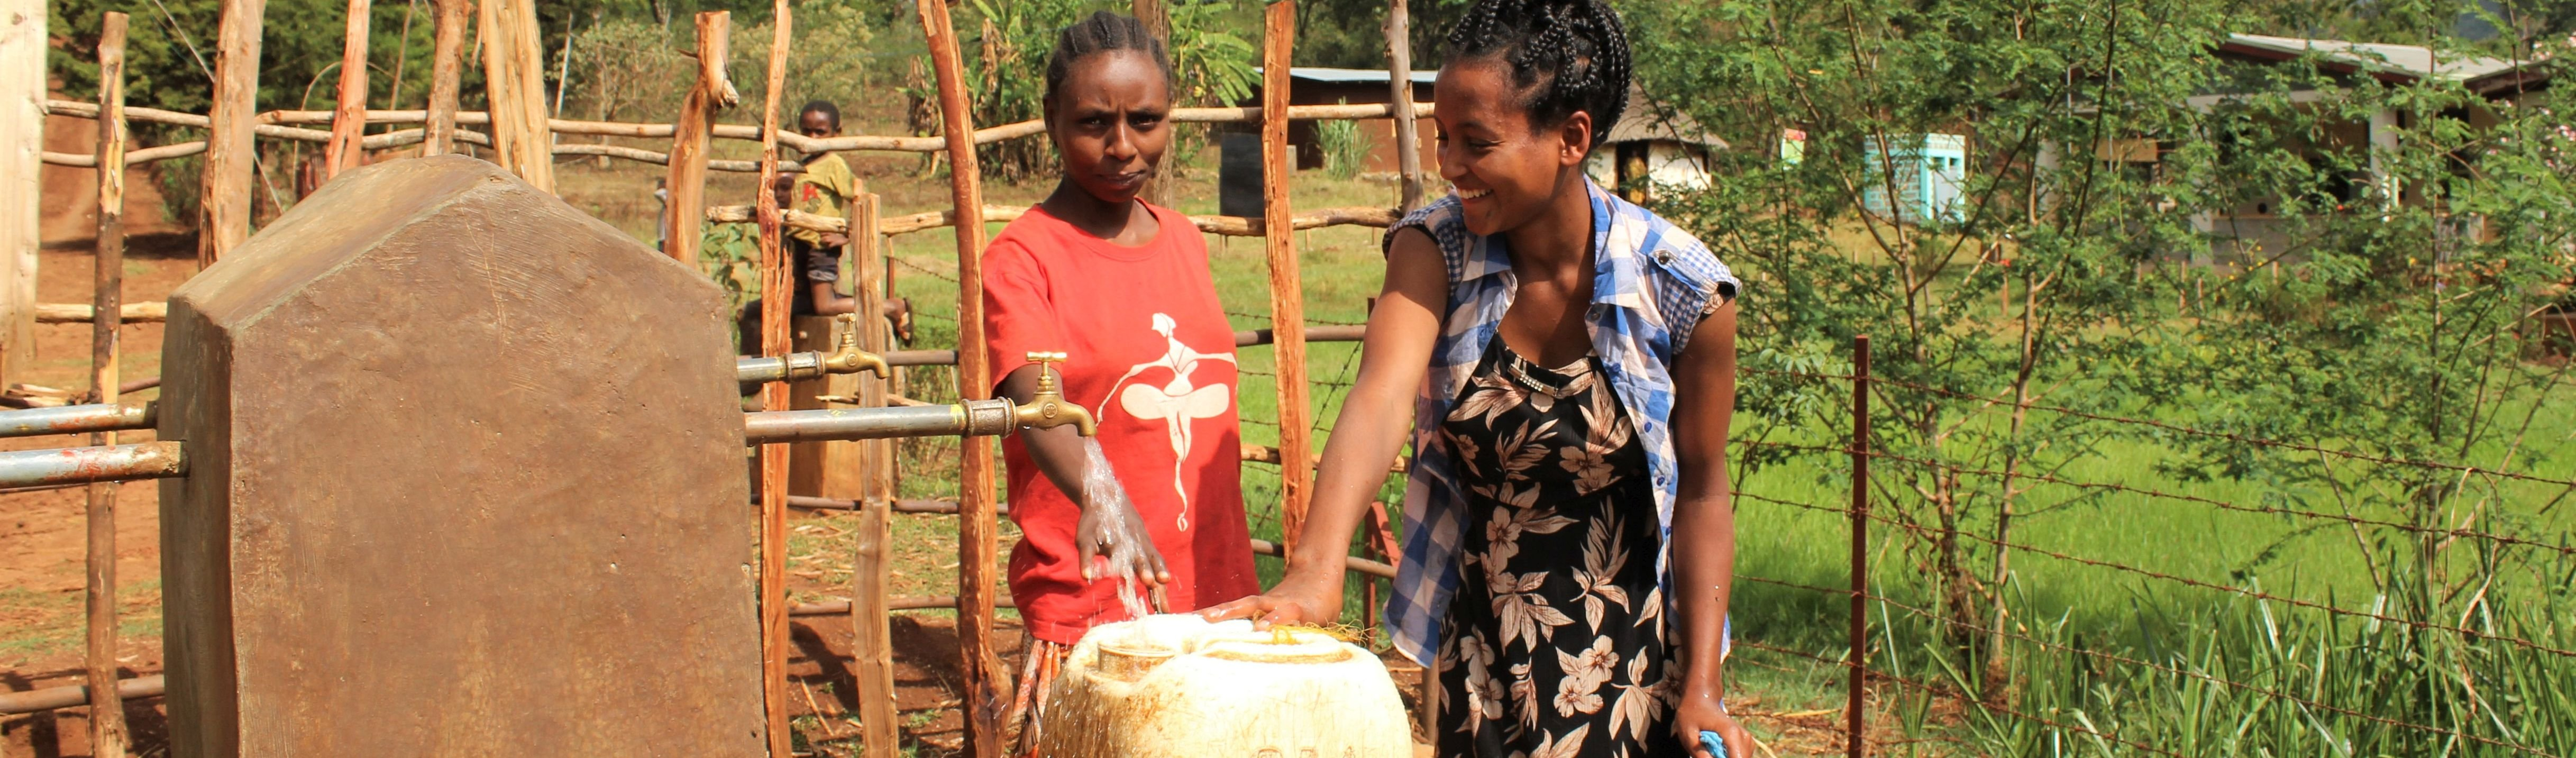 BLOG: Malnutrition, infection and BabyWASH. from research to realisation in Ethiopia